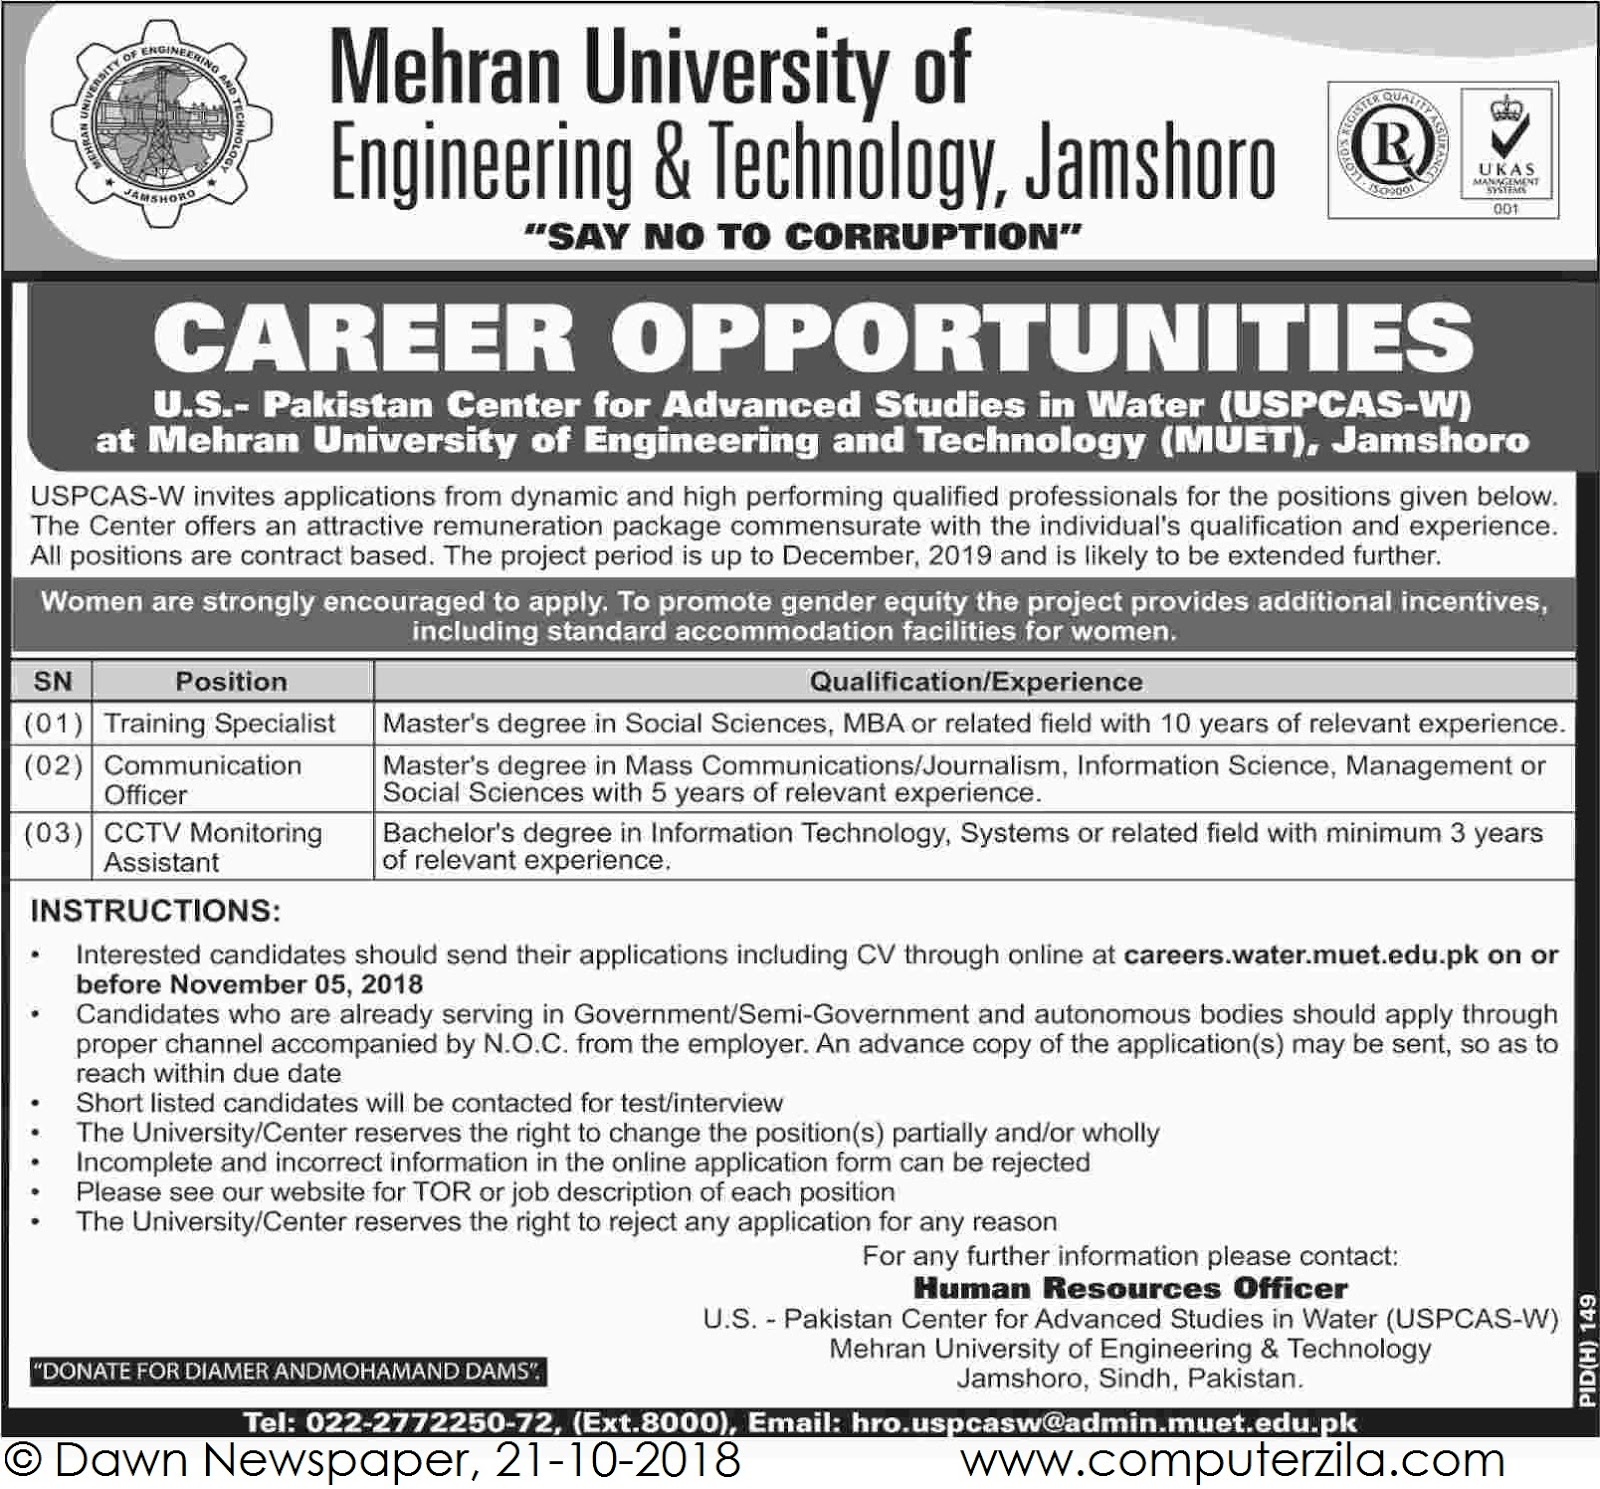 Career Opportunities at Mehran University of Engineering & Technology, Jamshoro